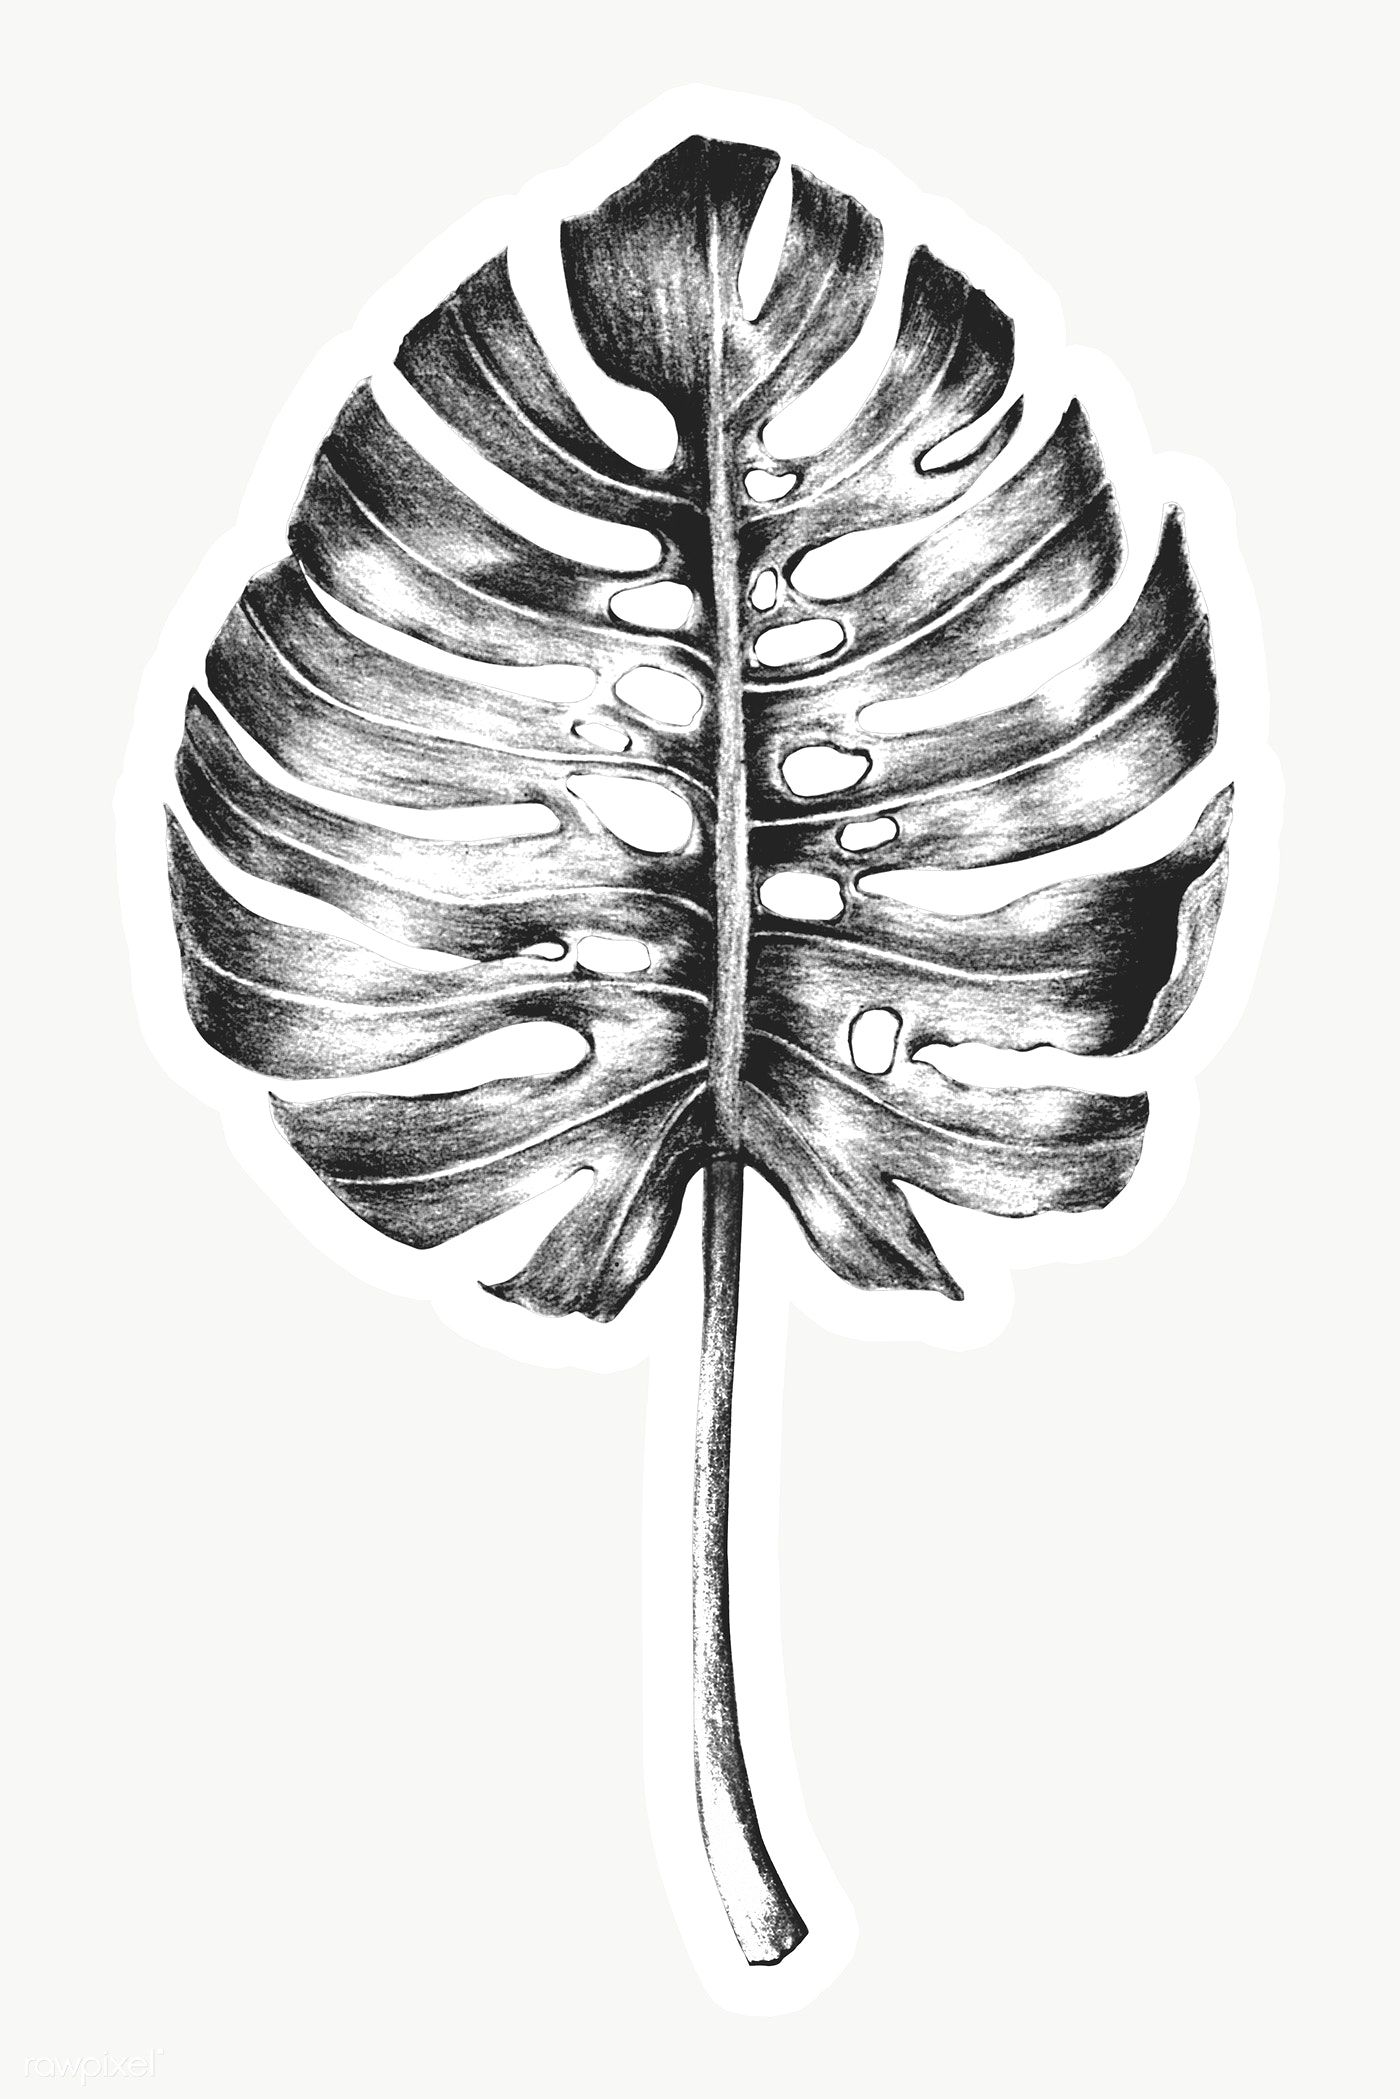 Black And White Hand Colored Monstera Leaf Sticker Overlay With White Border Free Image By Rawpixel Com Leaf Illustration Monstera Leaf Free Illustrations